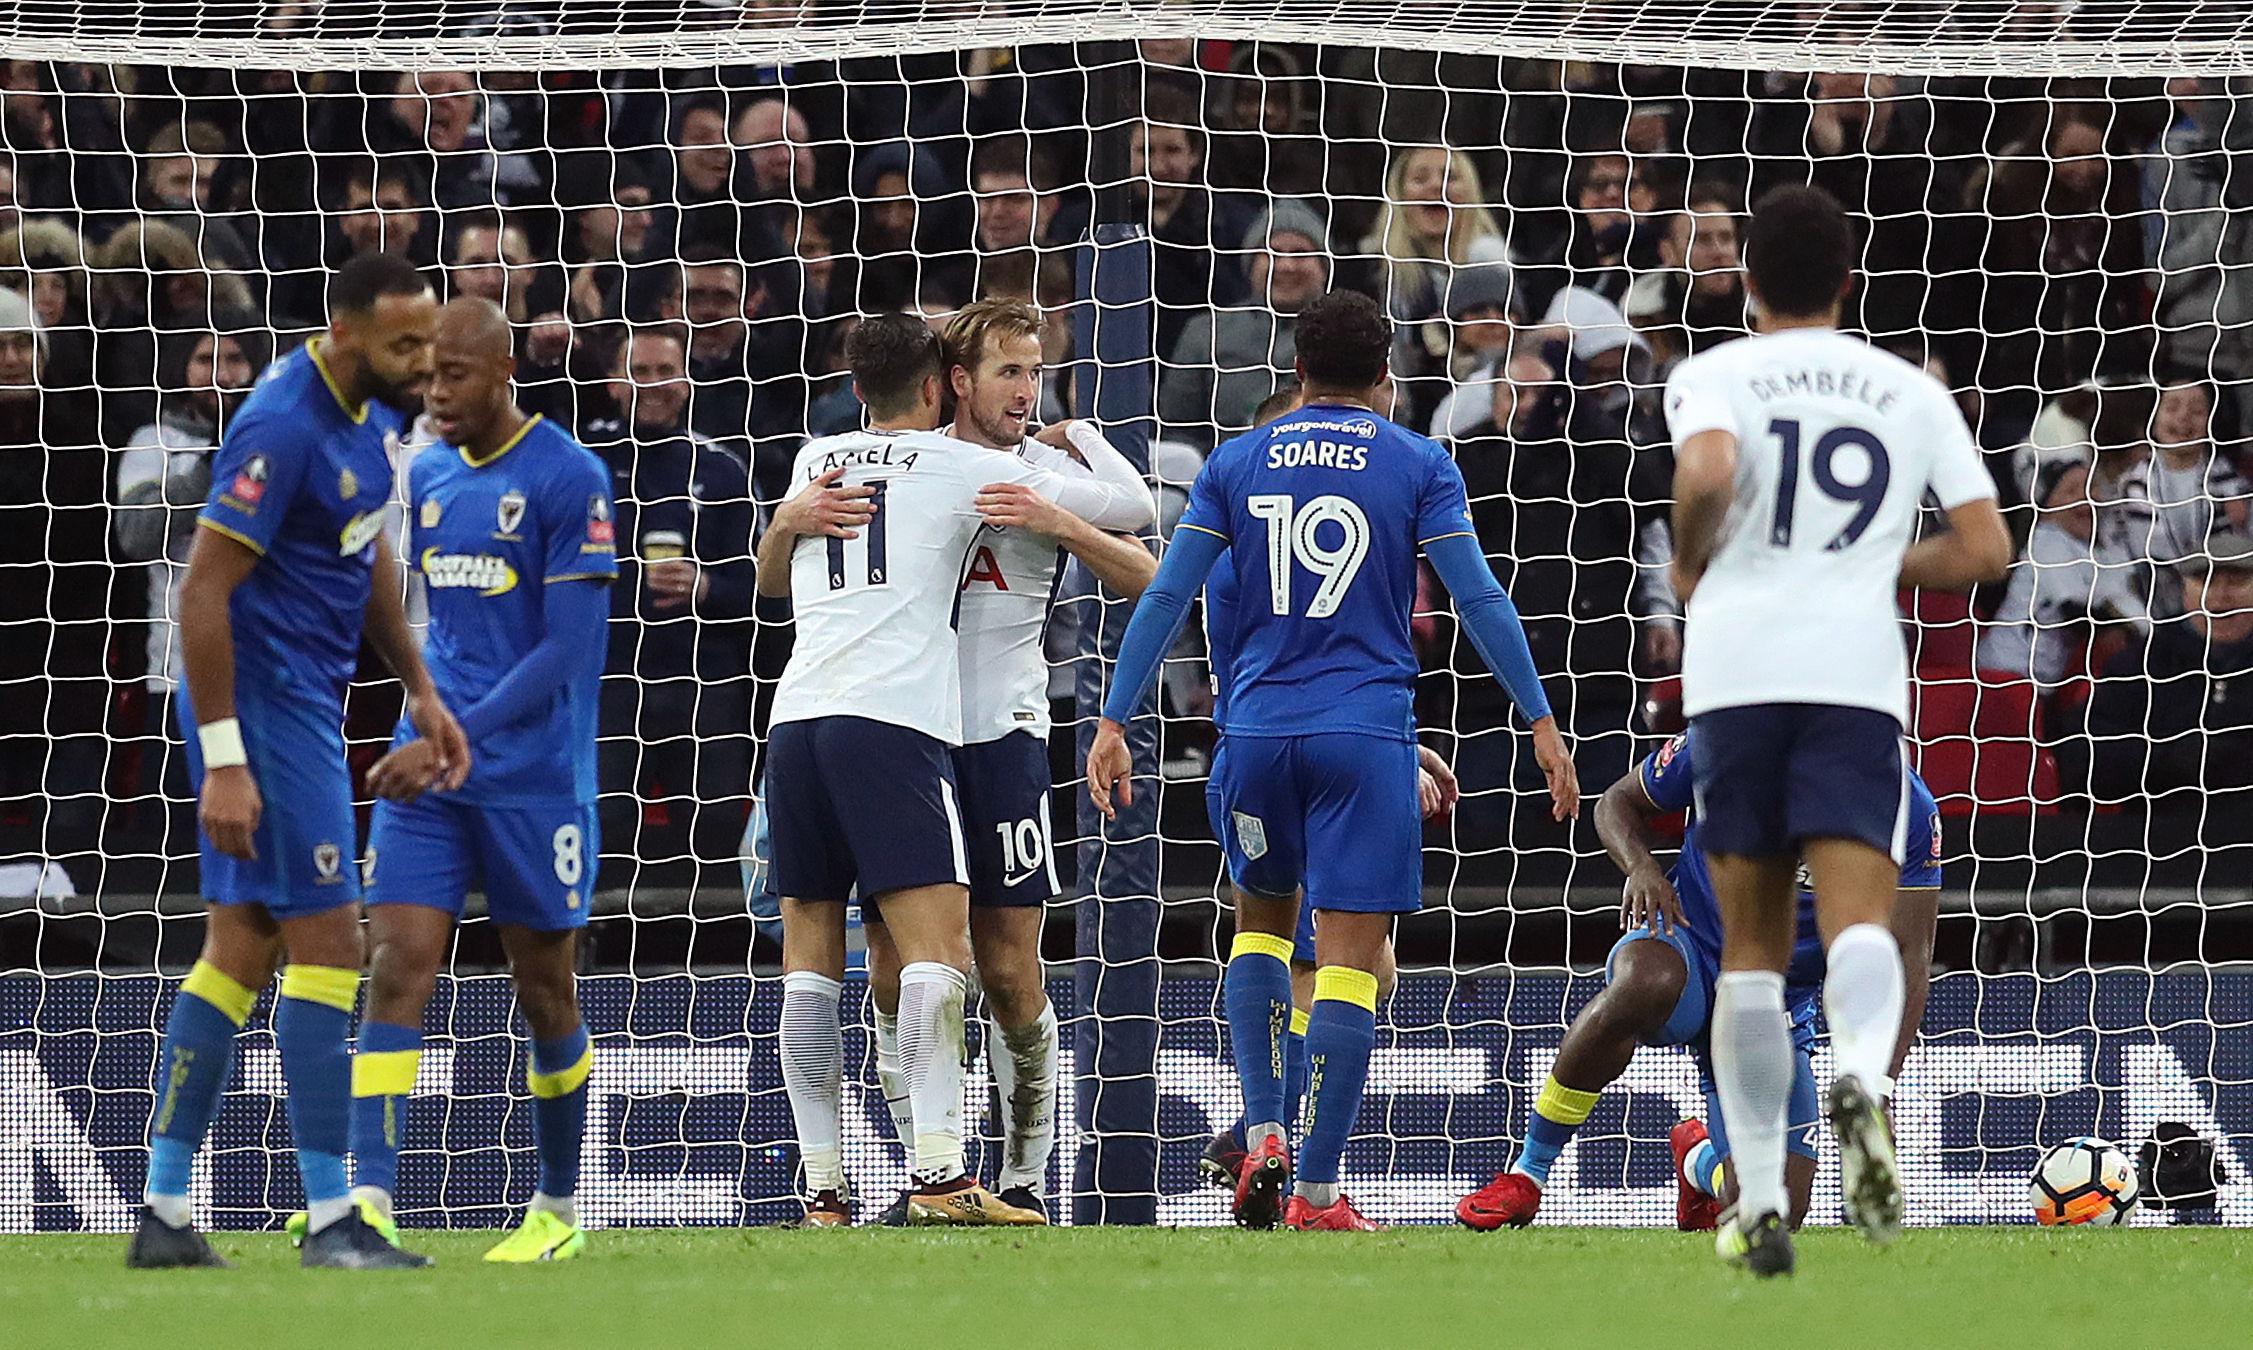 Harry Kane scores against AFC Wimbledon. Photo: Adam Davy/PA Wire